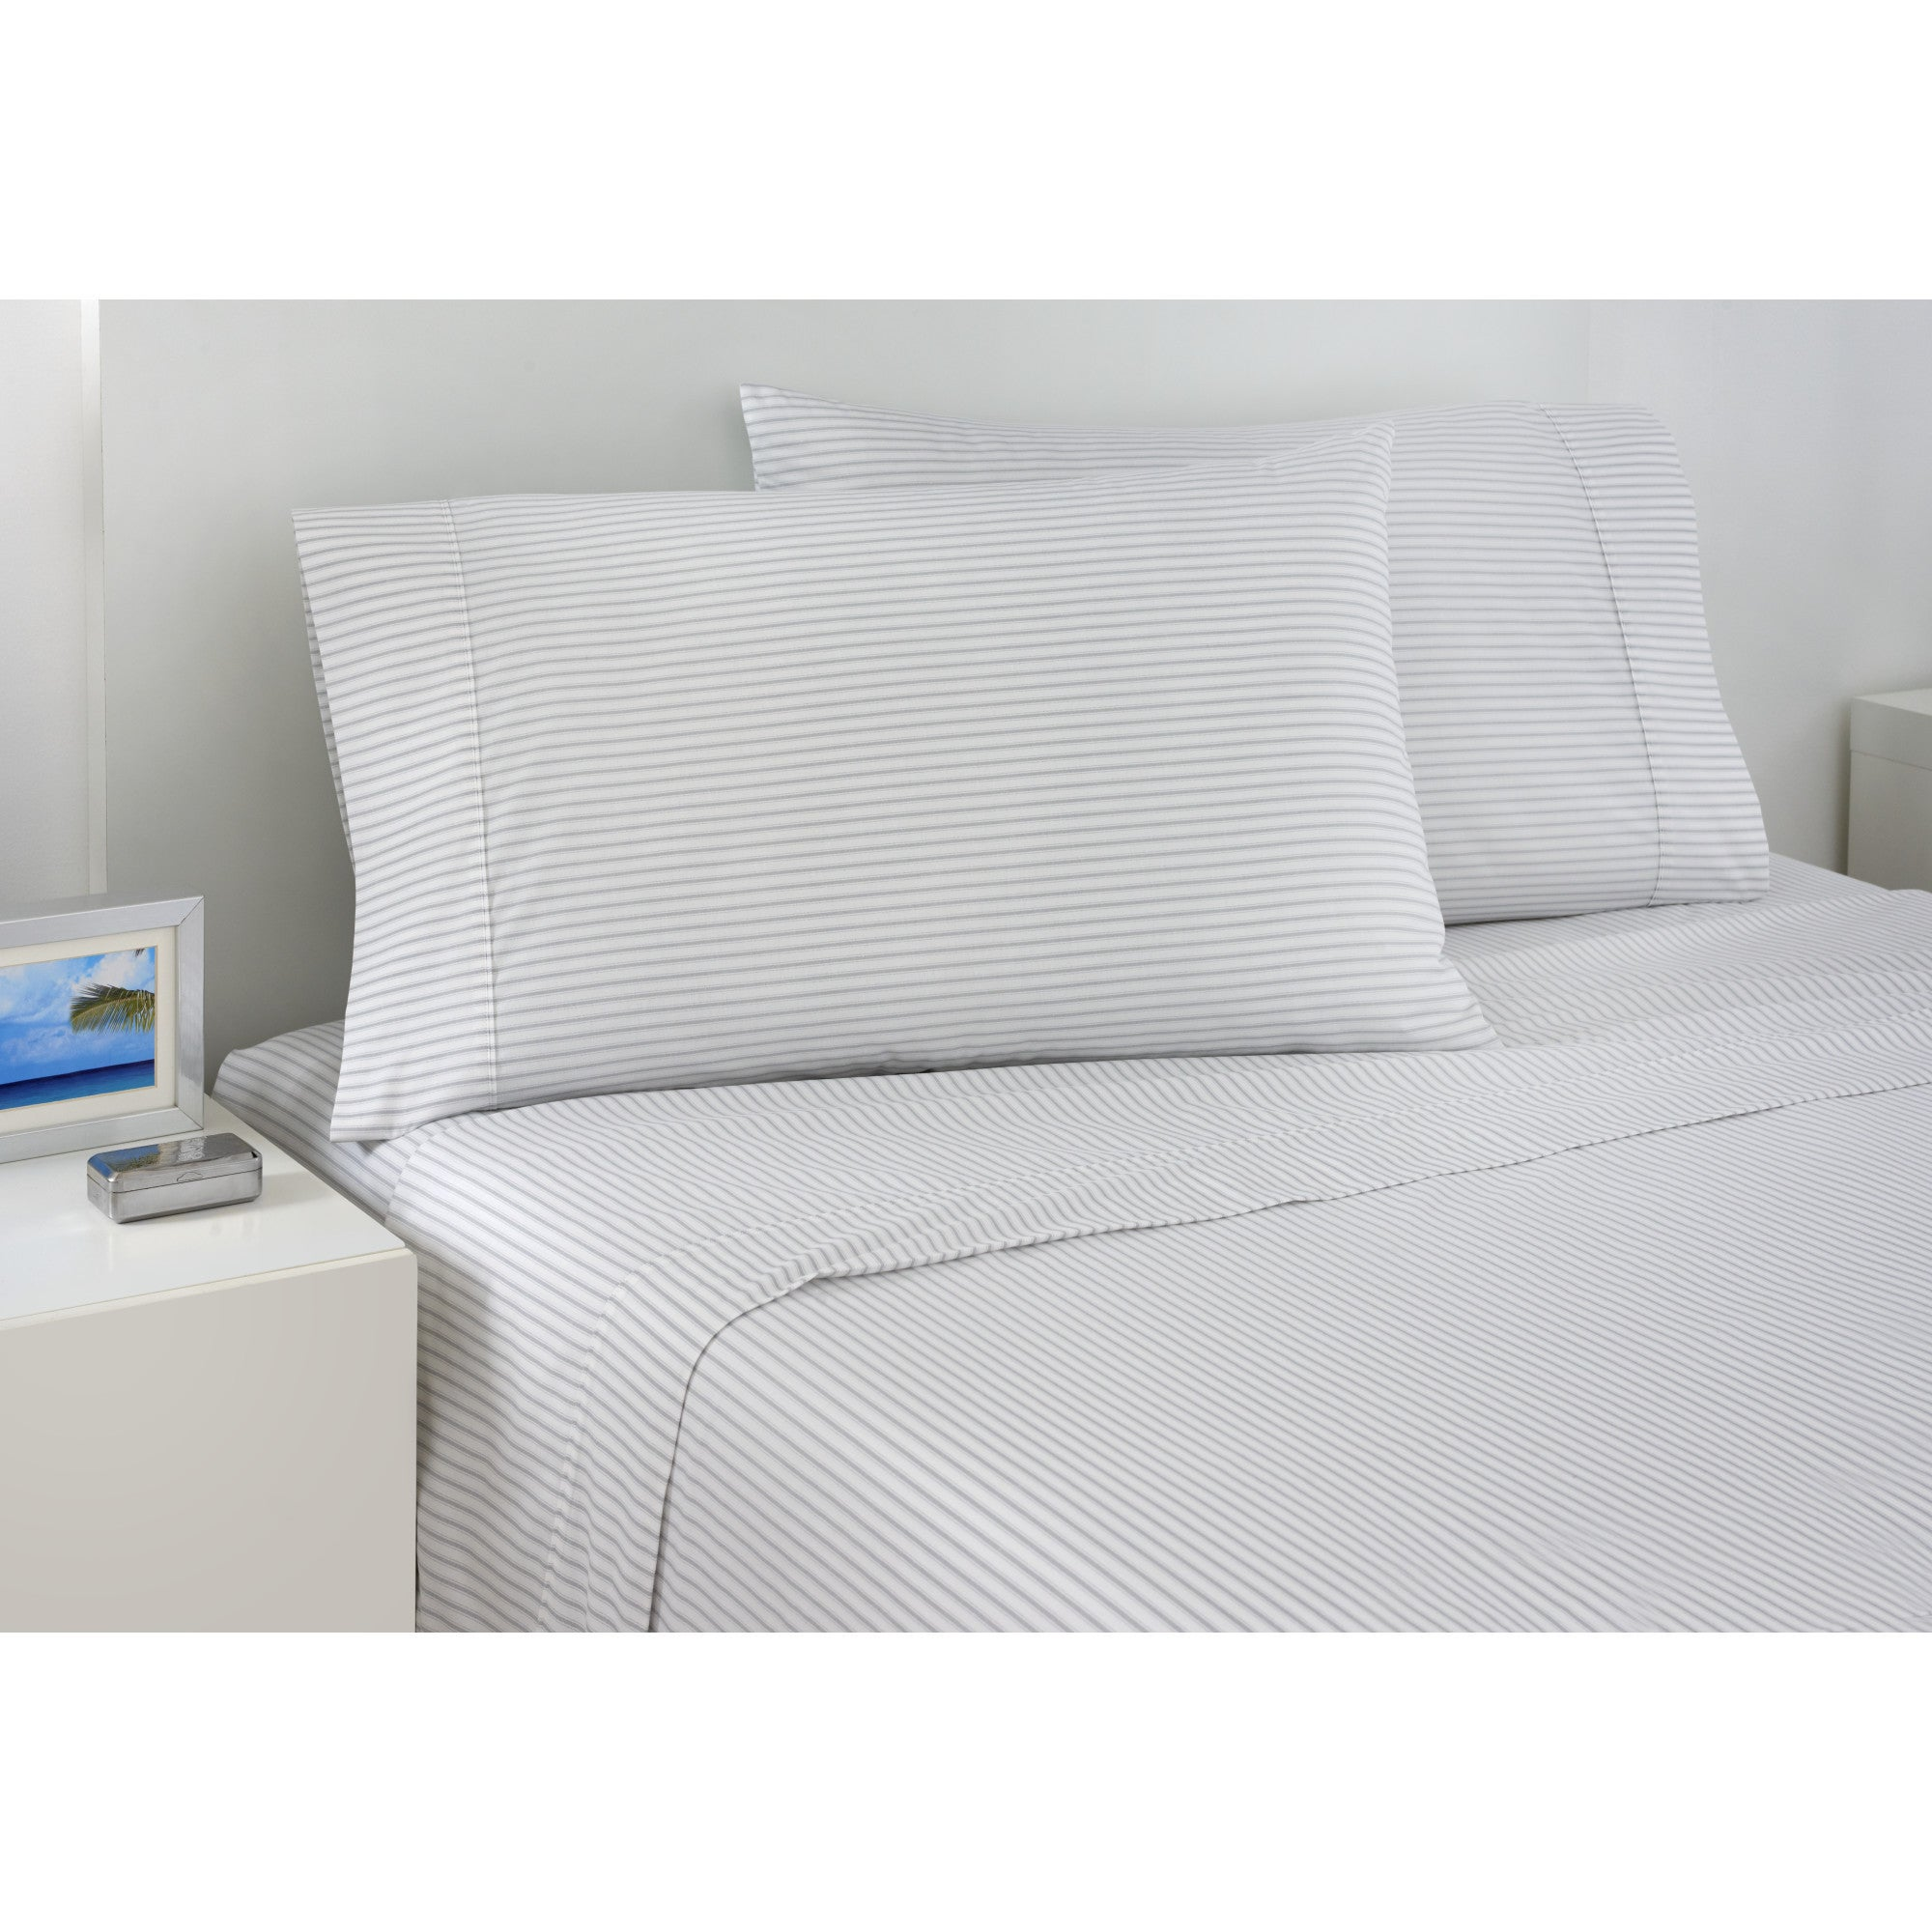 break stripe warmth blue of single and luxury the cdbossington within ticking hotel cover satin quality family duvet image